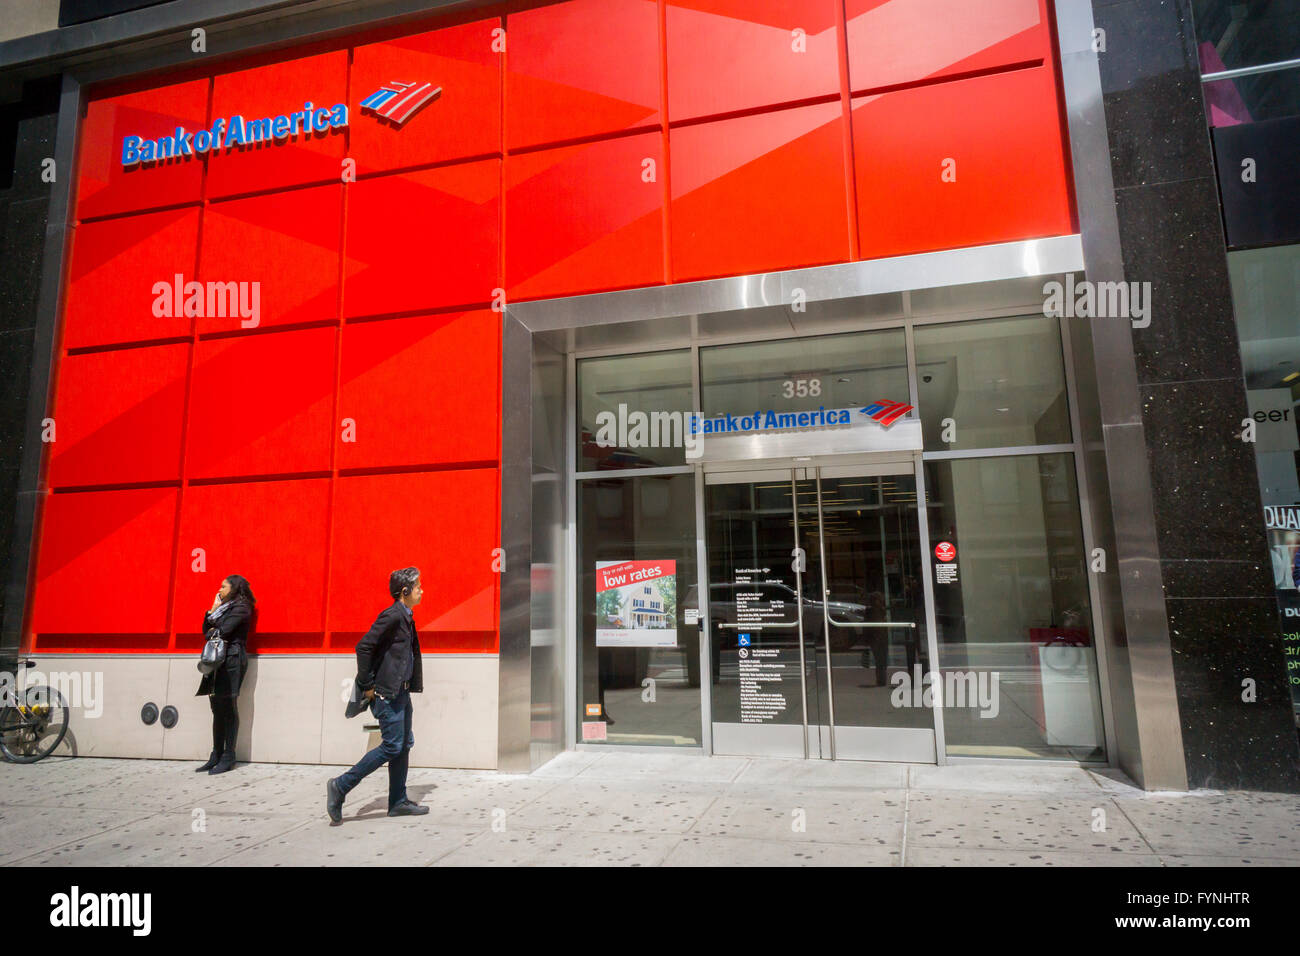 A branch of Bank of America in New York on Tuesday, April 26, 2016. Bank of America is to hold its annual shareholder - Stock Image